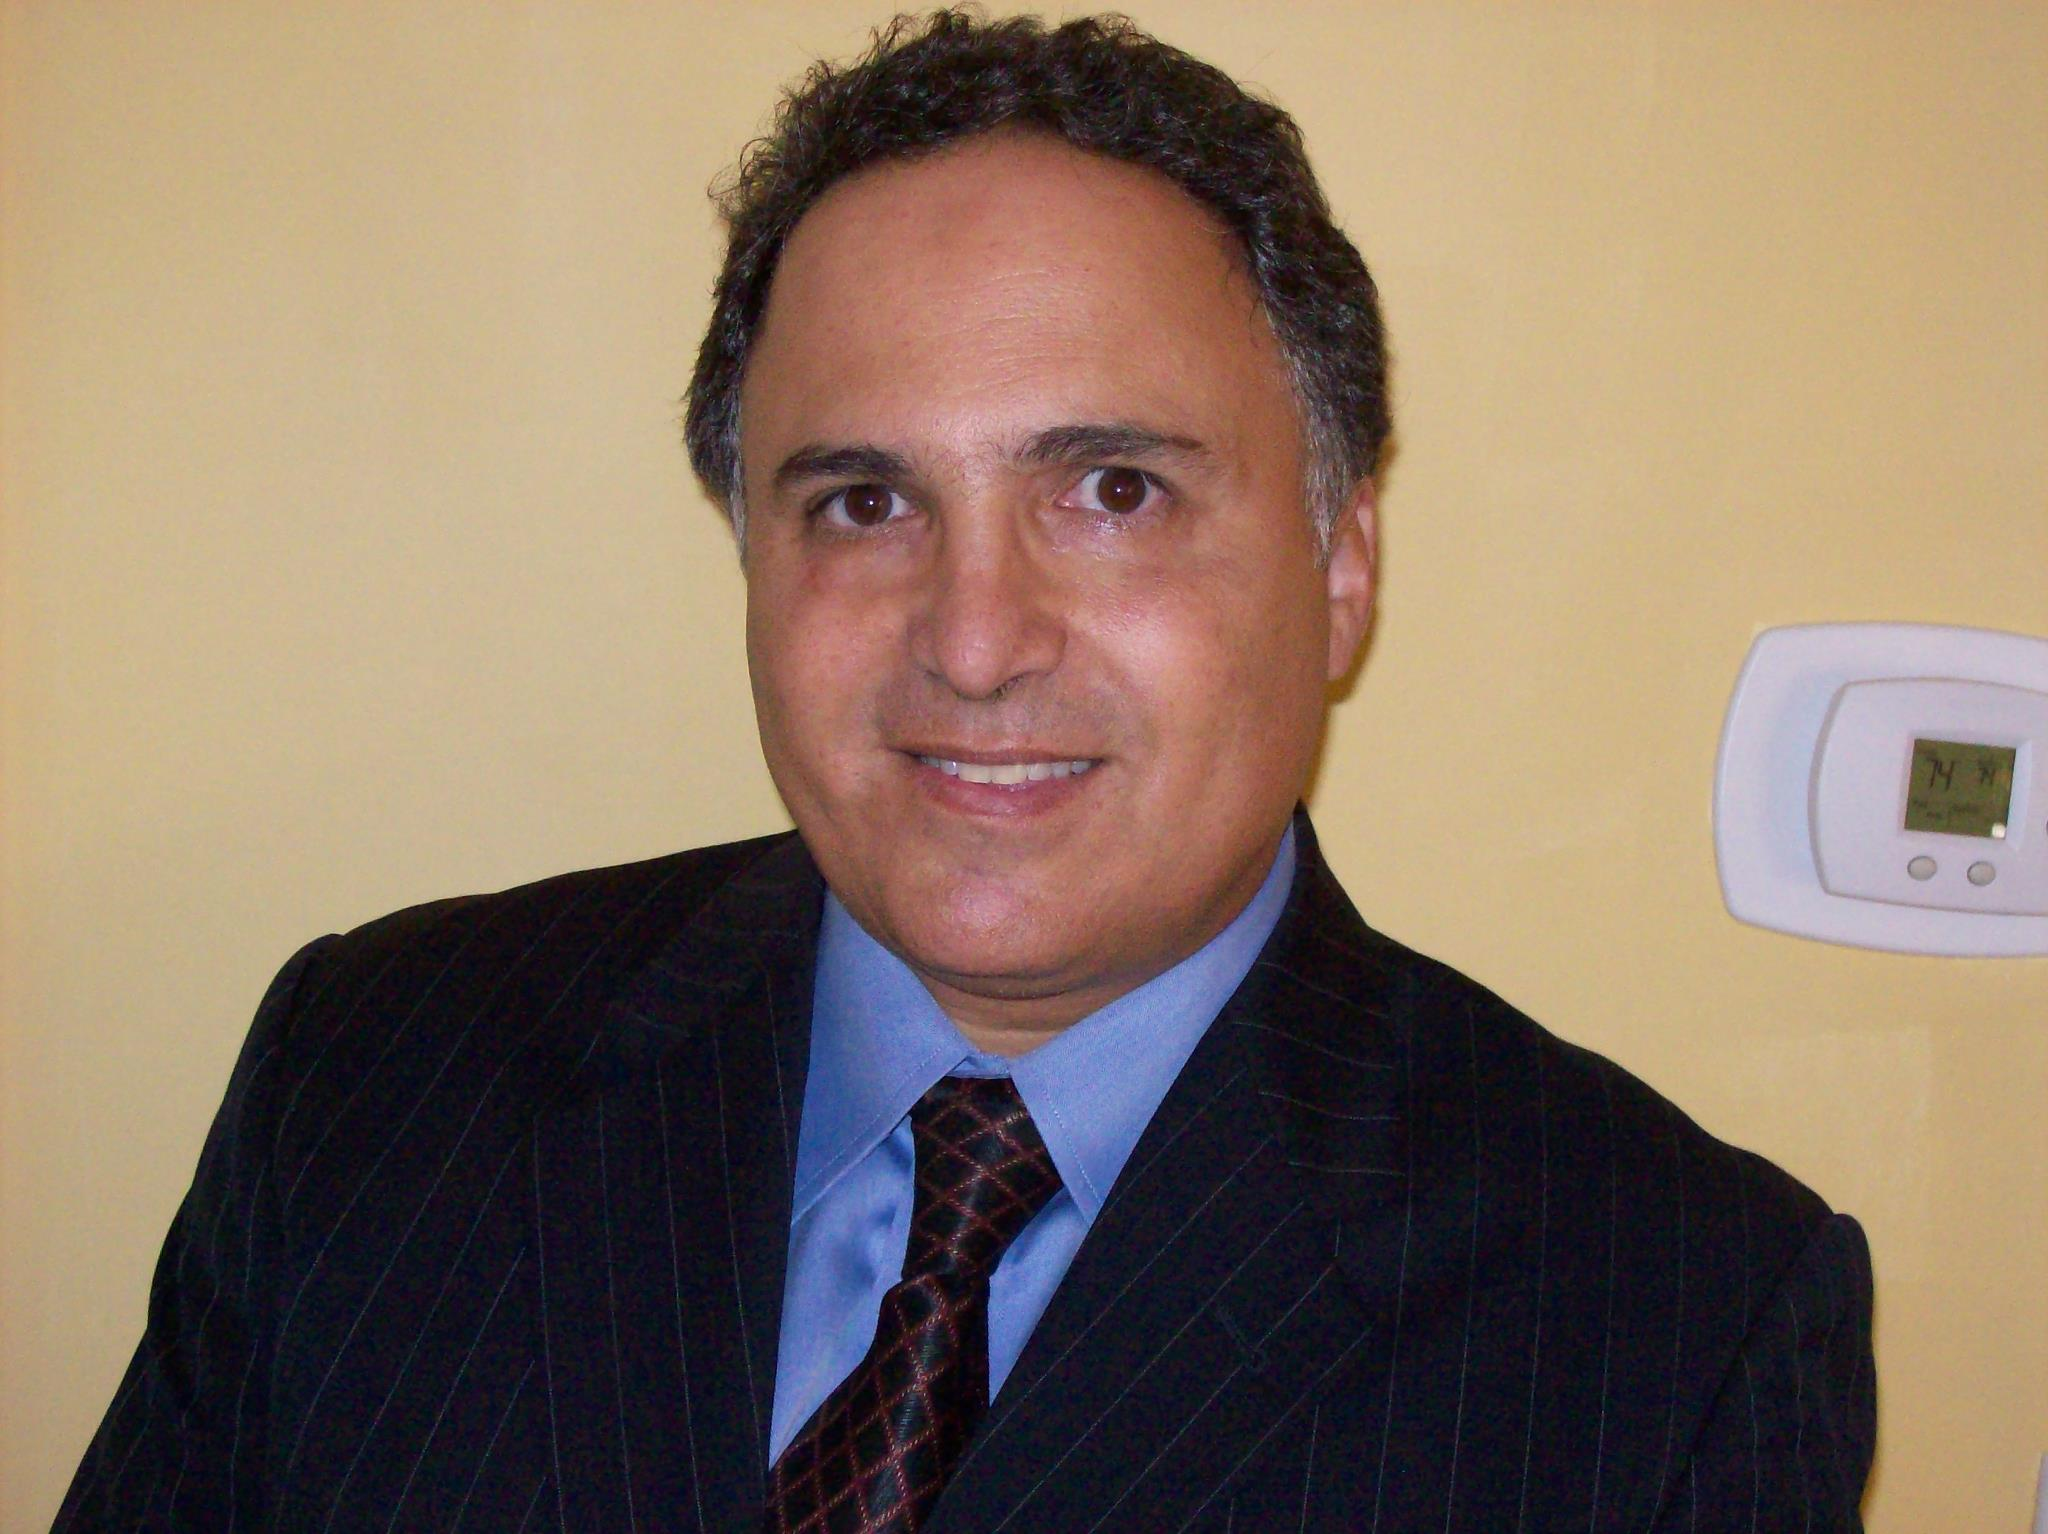 Lonnie M. Greenblatt, Attorney at Law